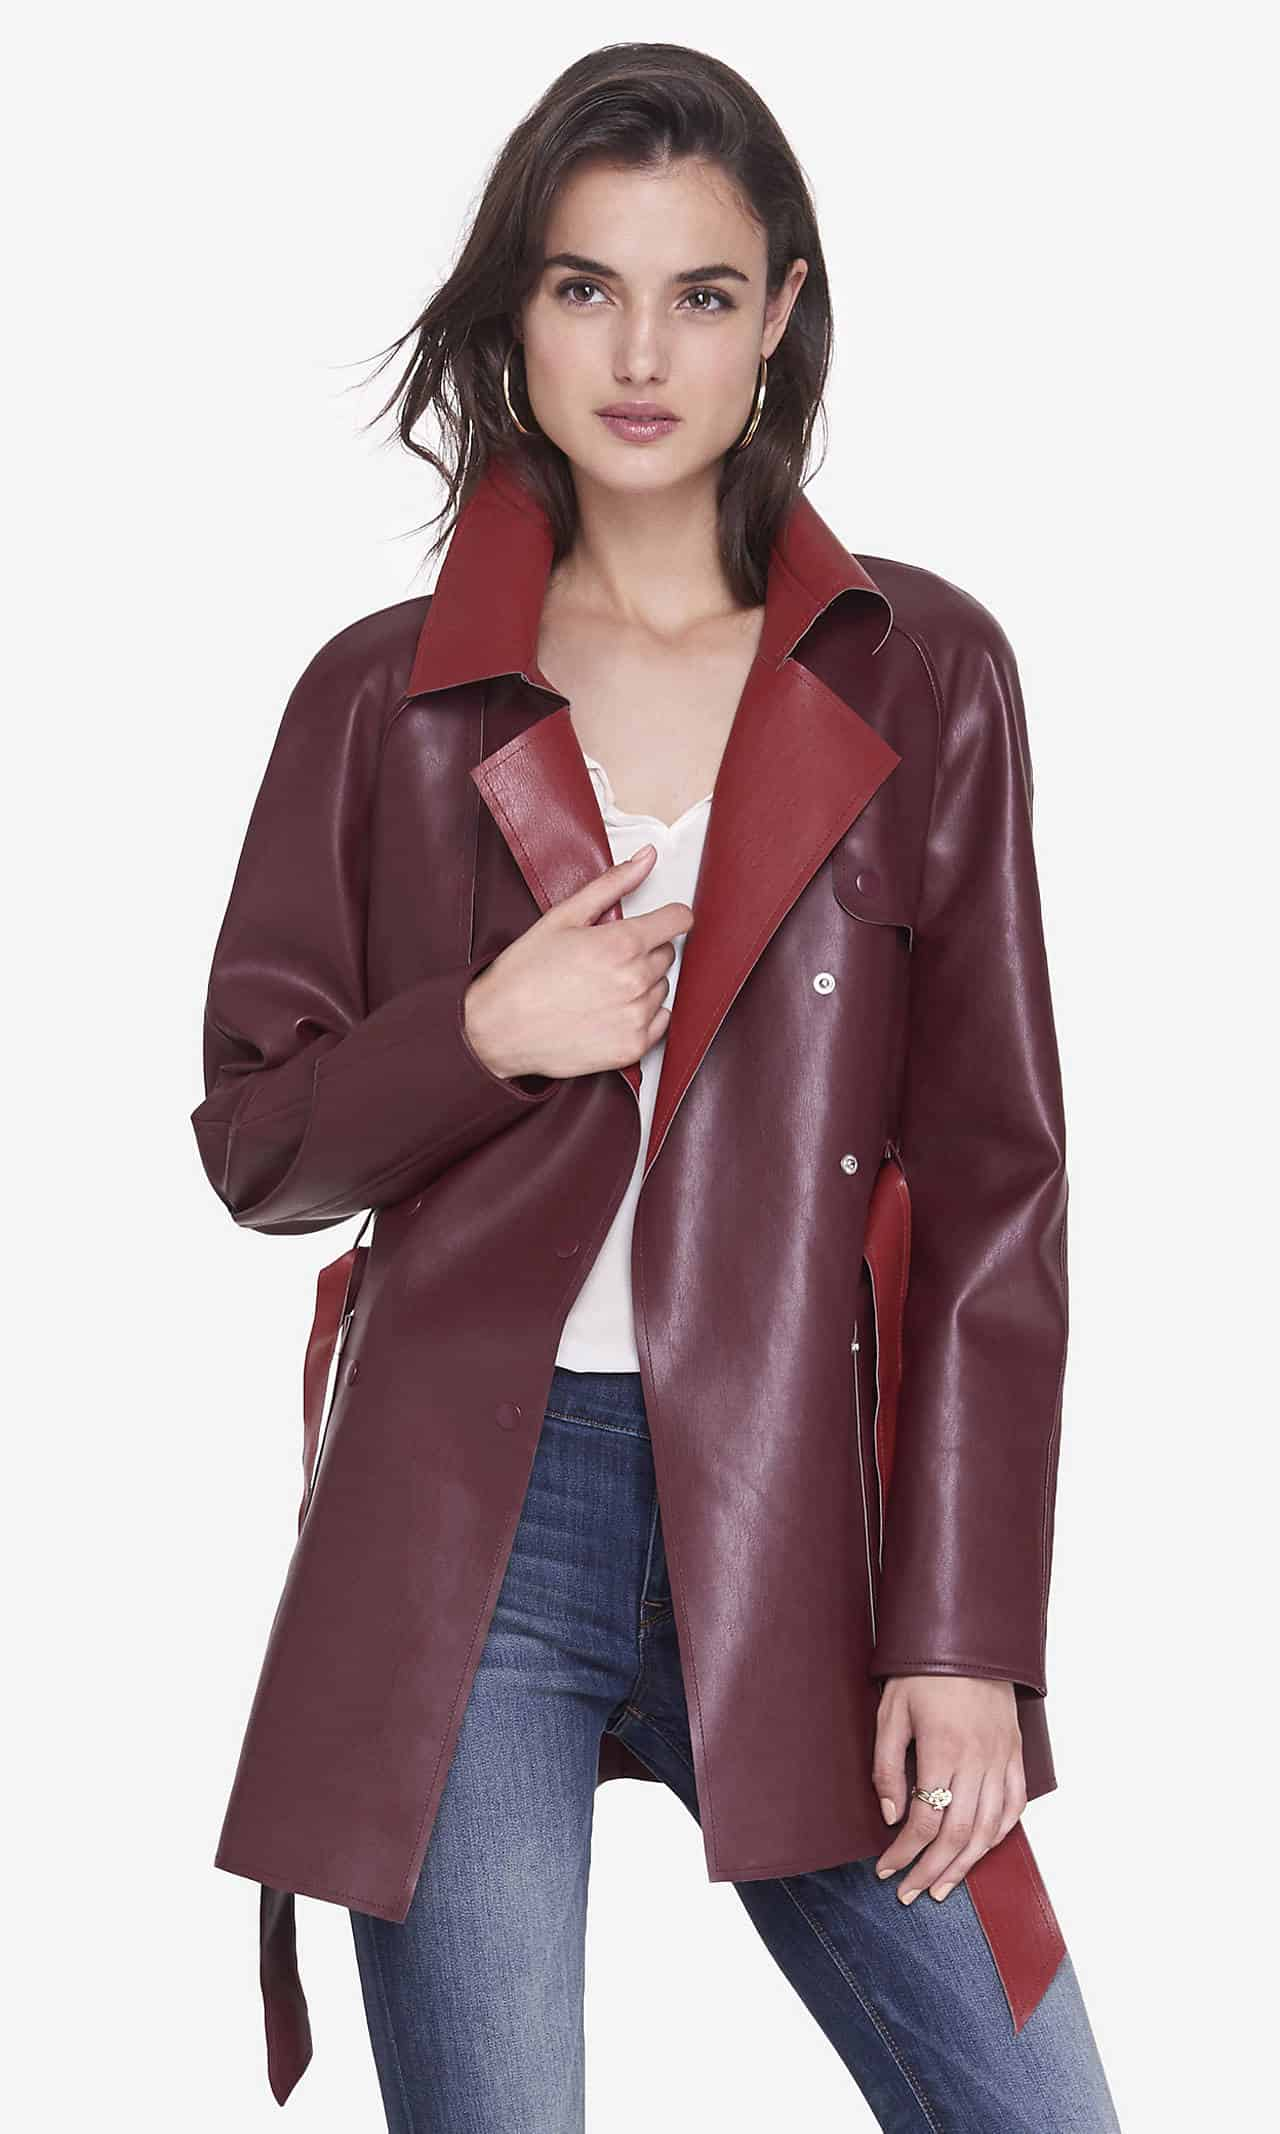 Women S Leather Jacket Trends Spring 2016 Dress Trends